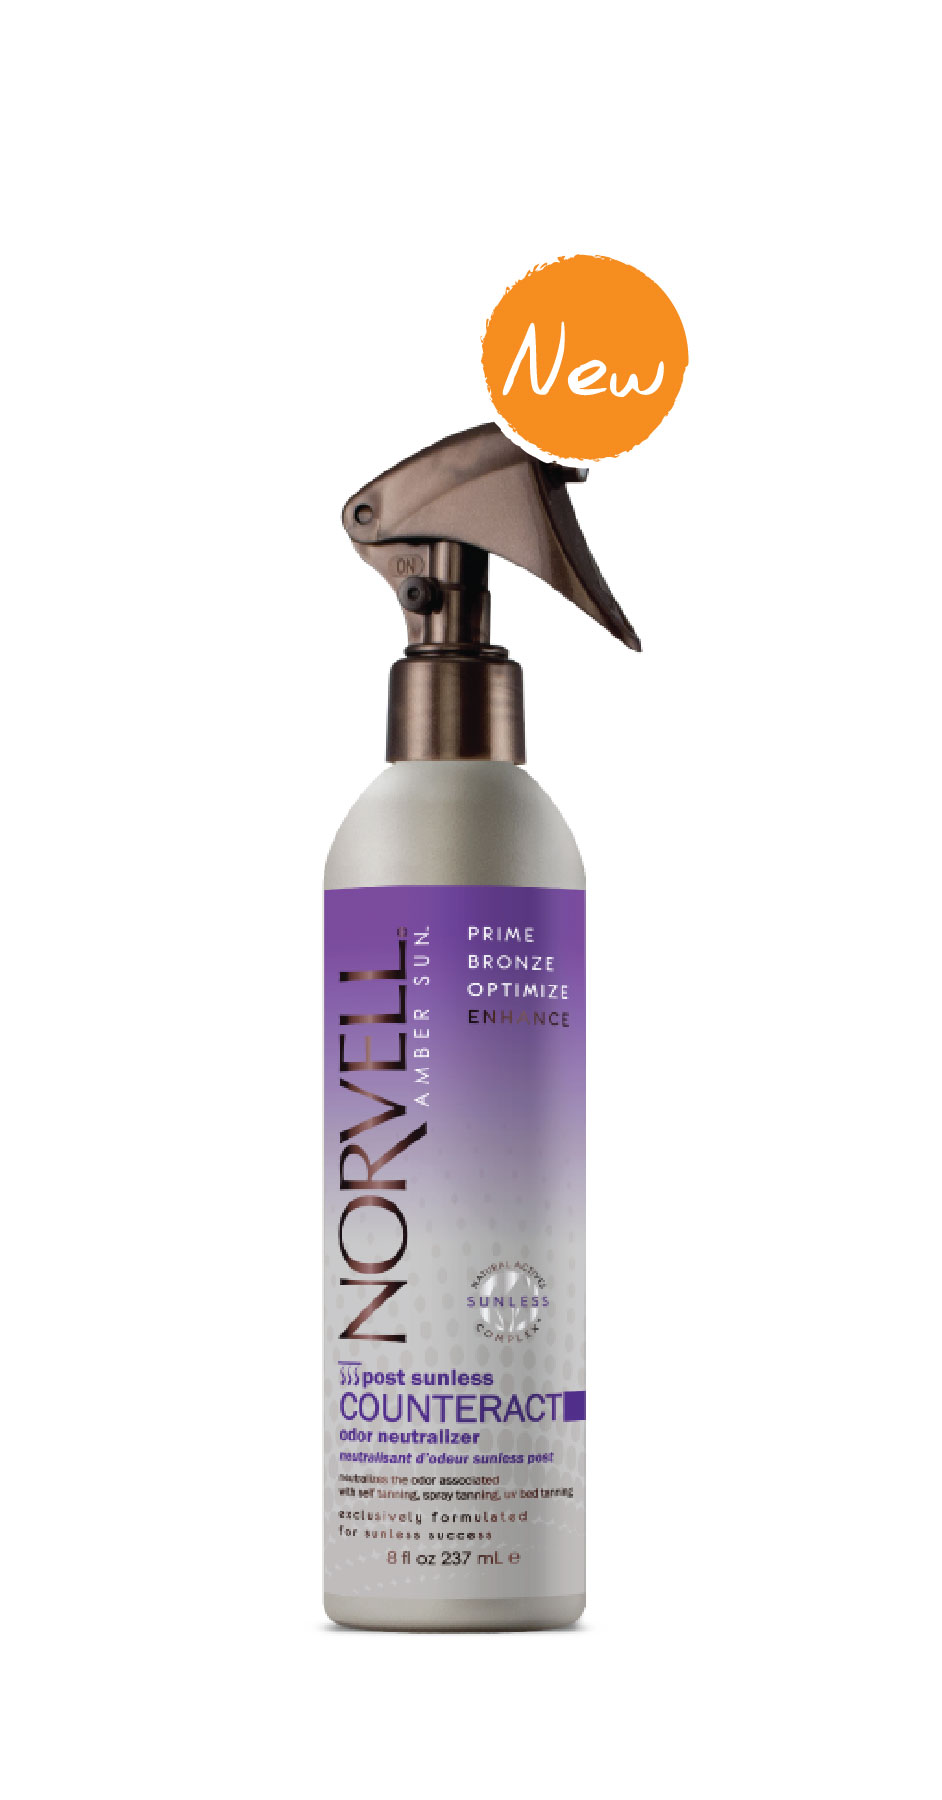 POST SUNLESS COUNTERACT ODOR NEUTRALIZIER